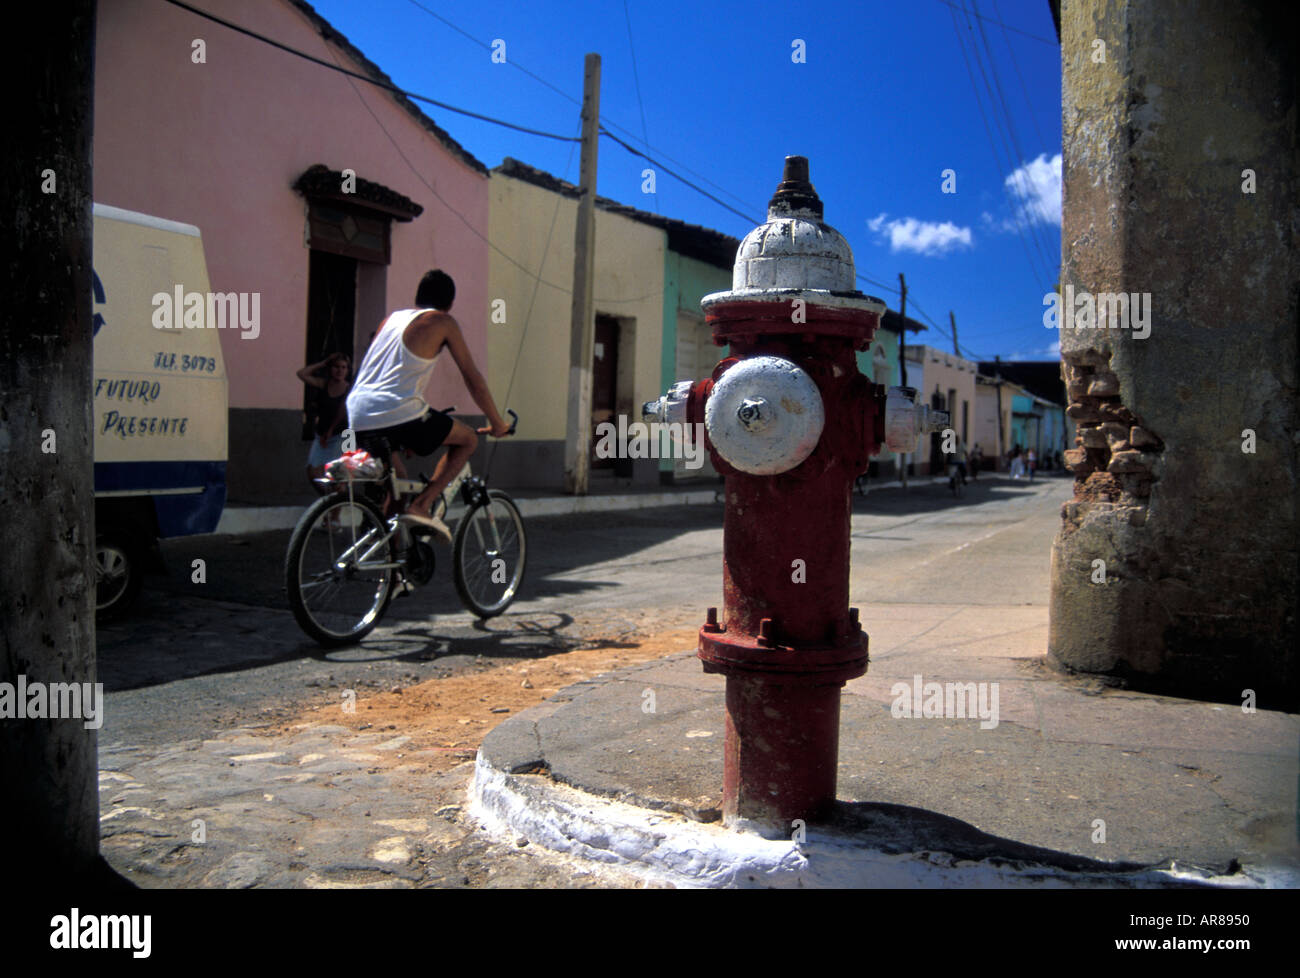 Red and white painted fire hydrant - Stock Image